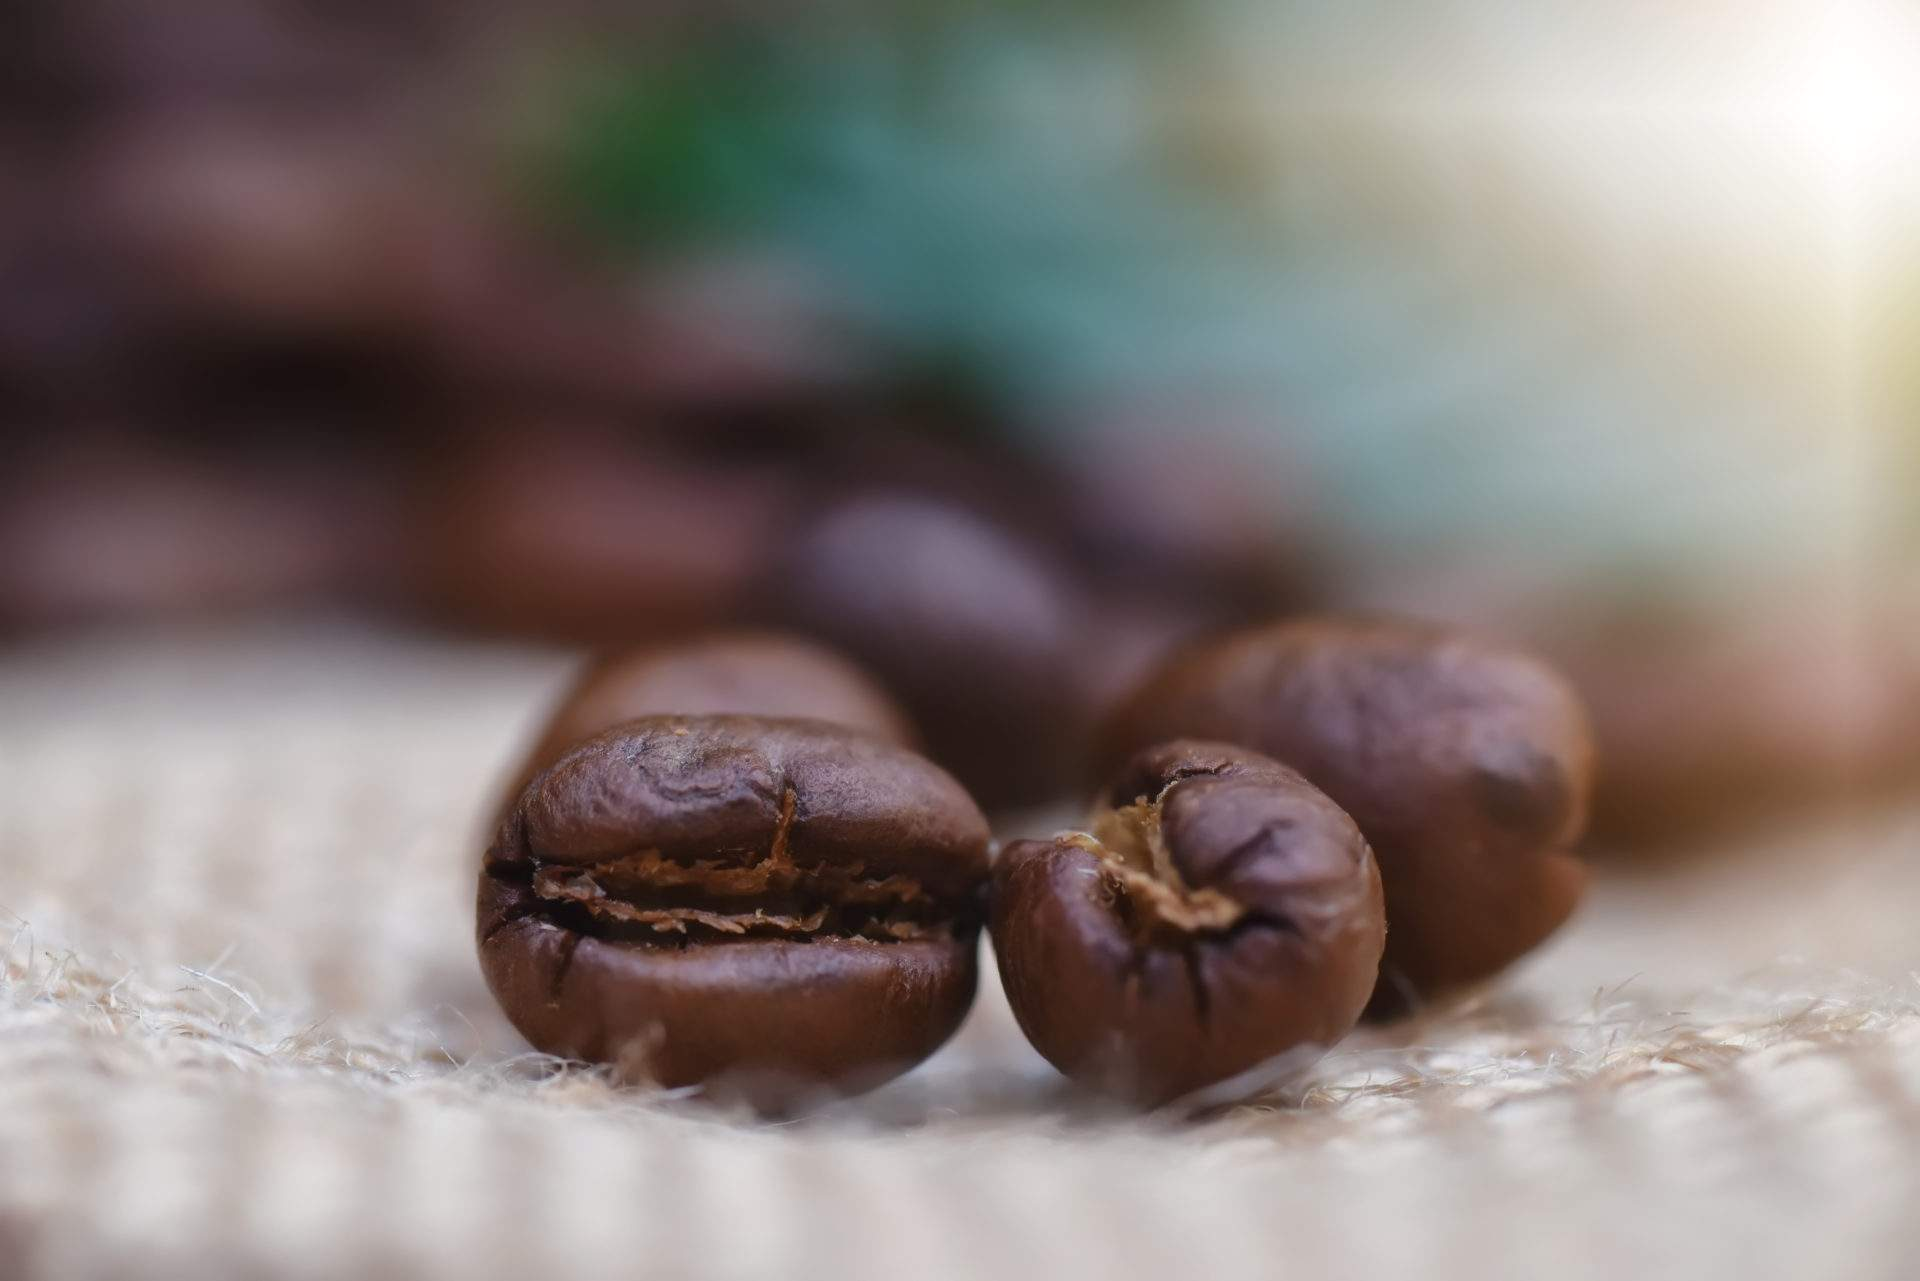 Peaberry Balistar